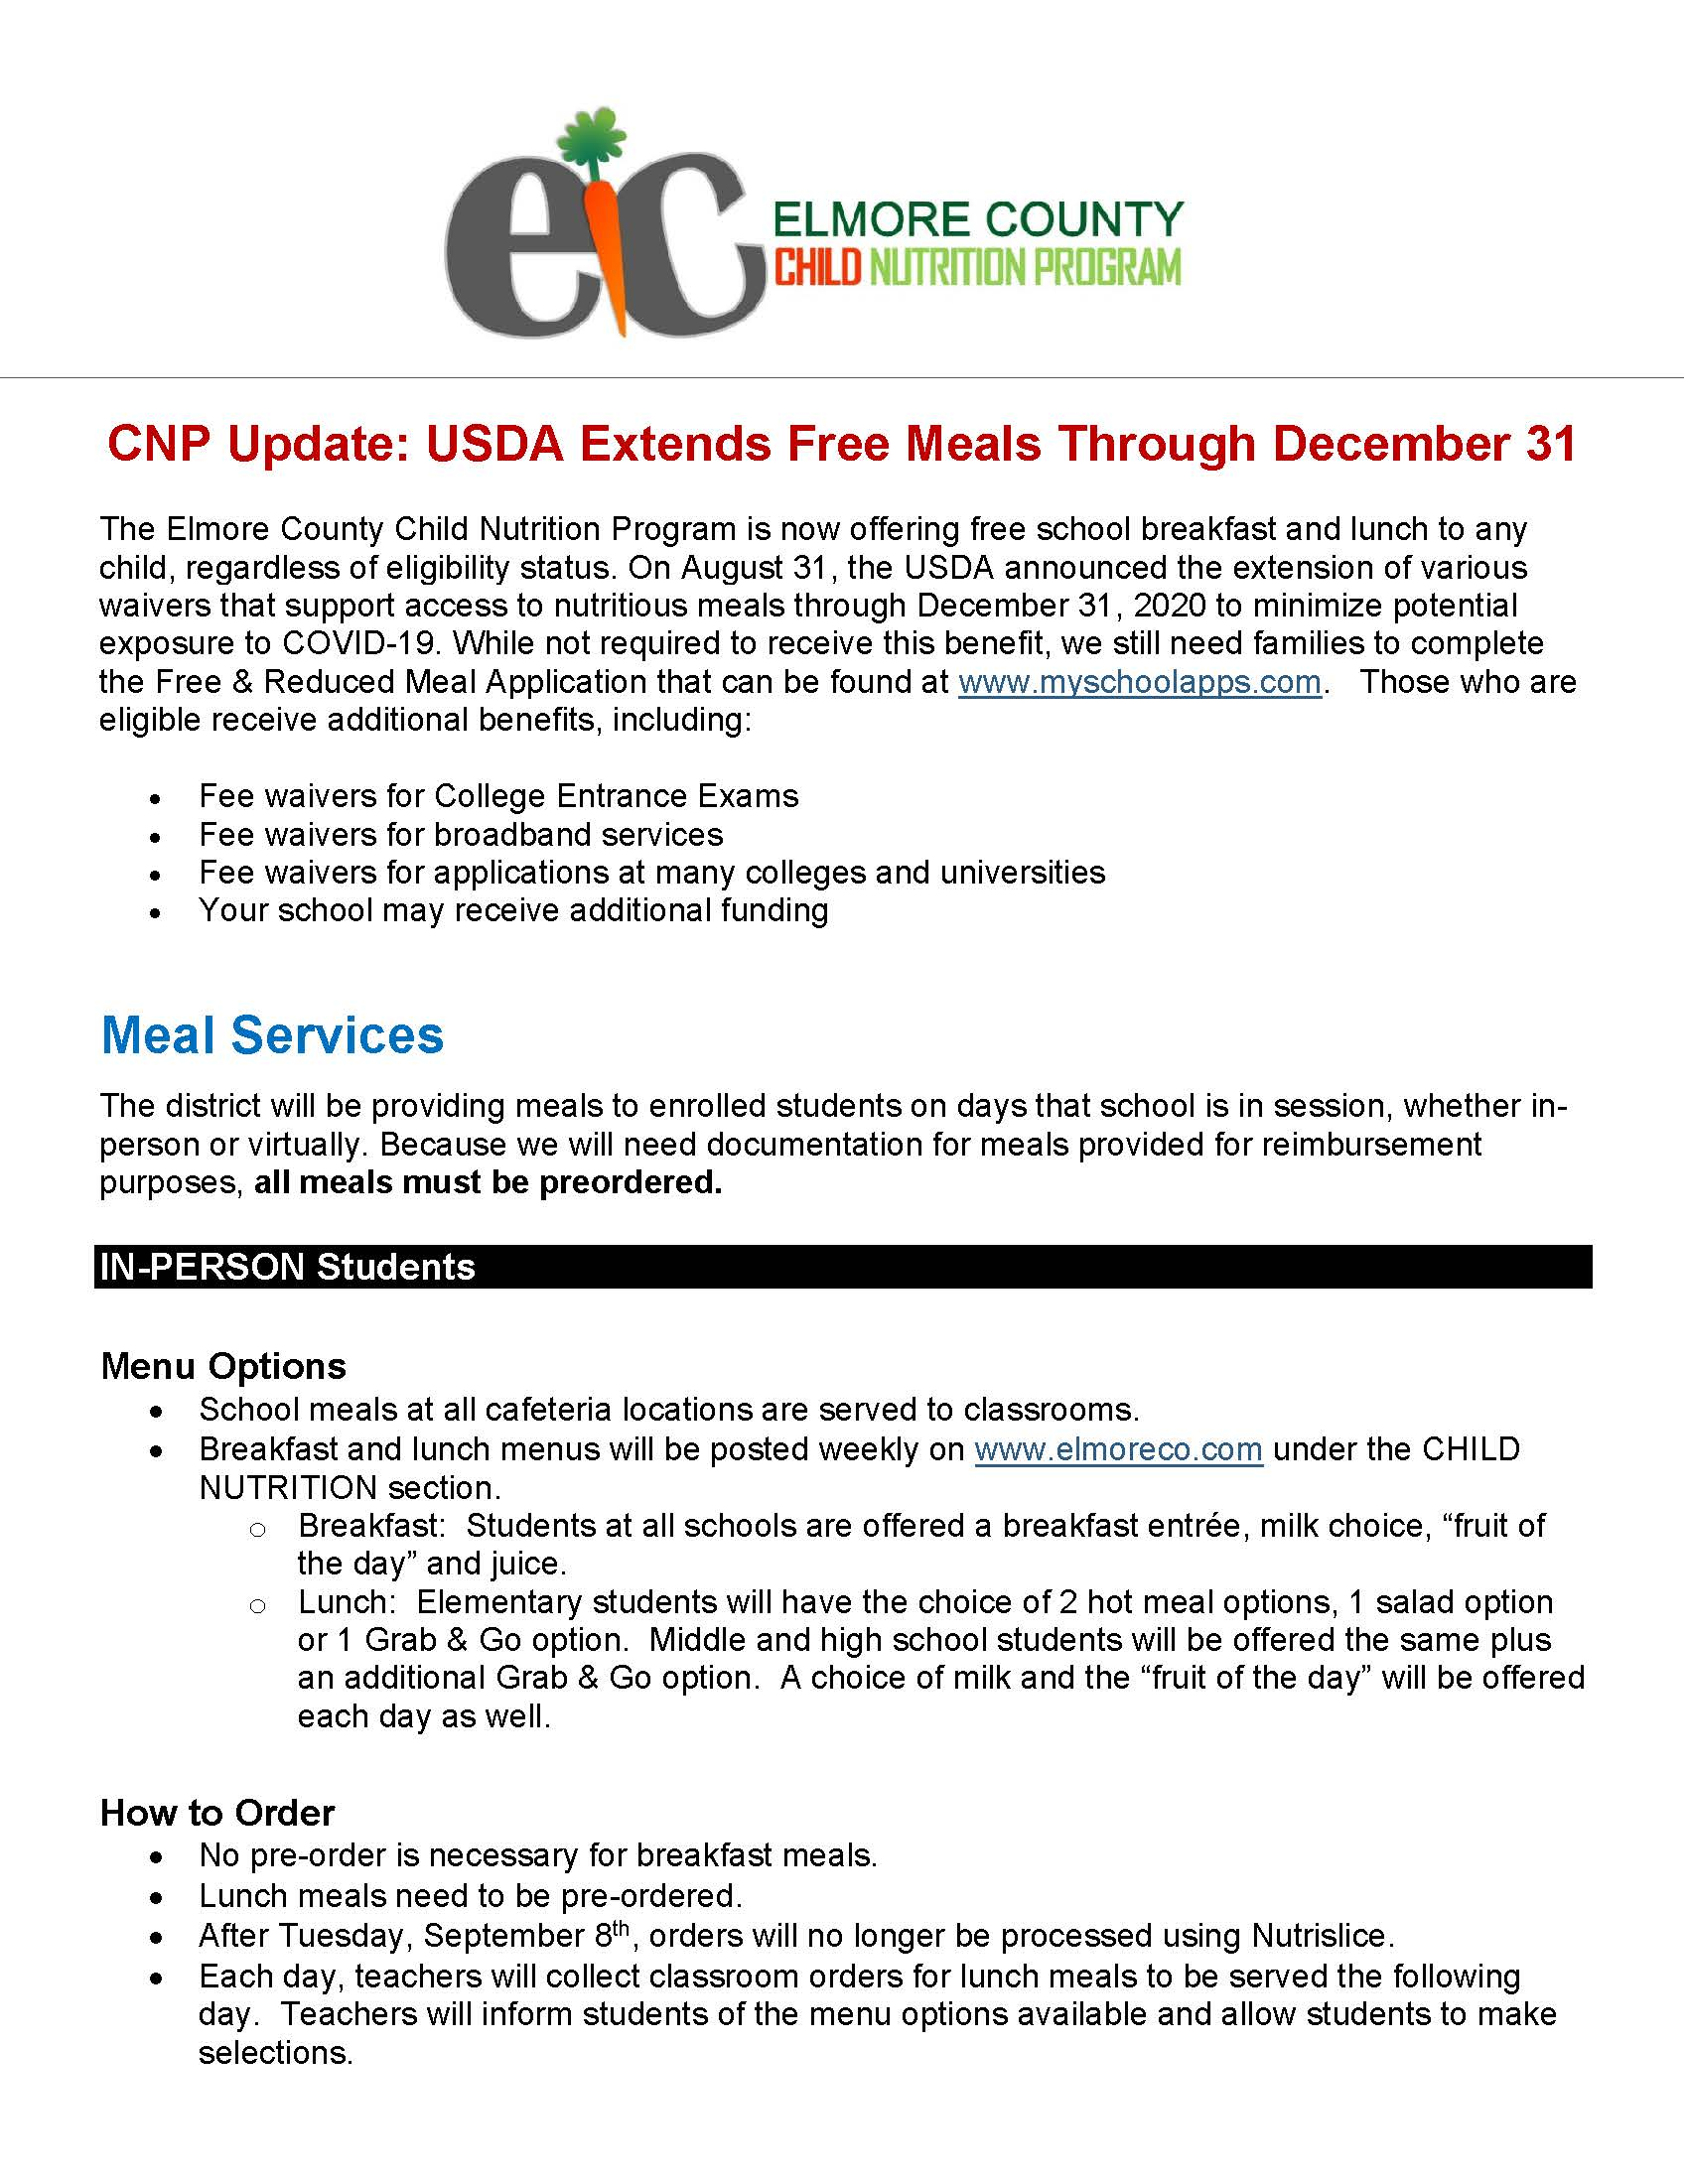 CNP UPDATE PAGE 1